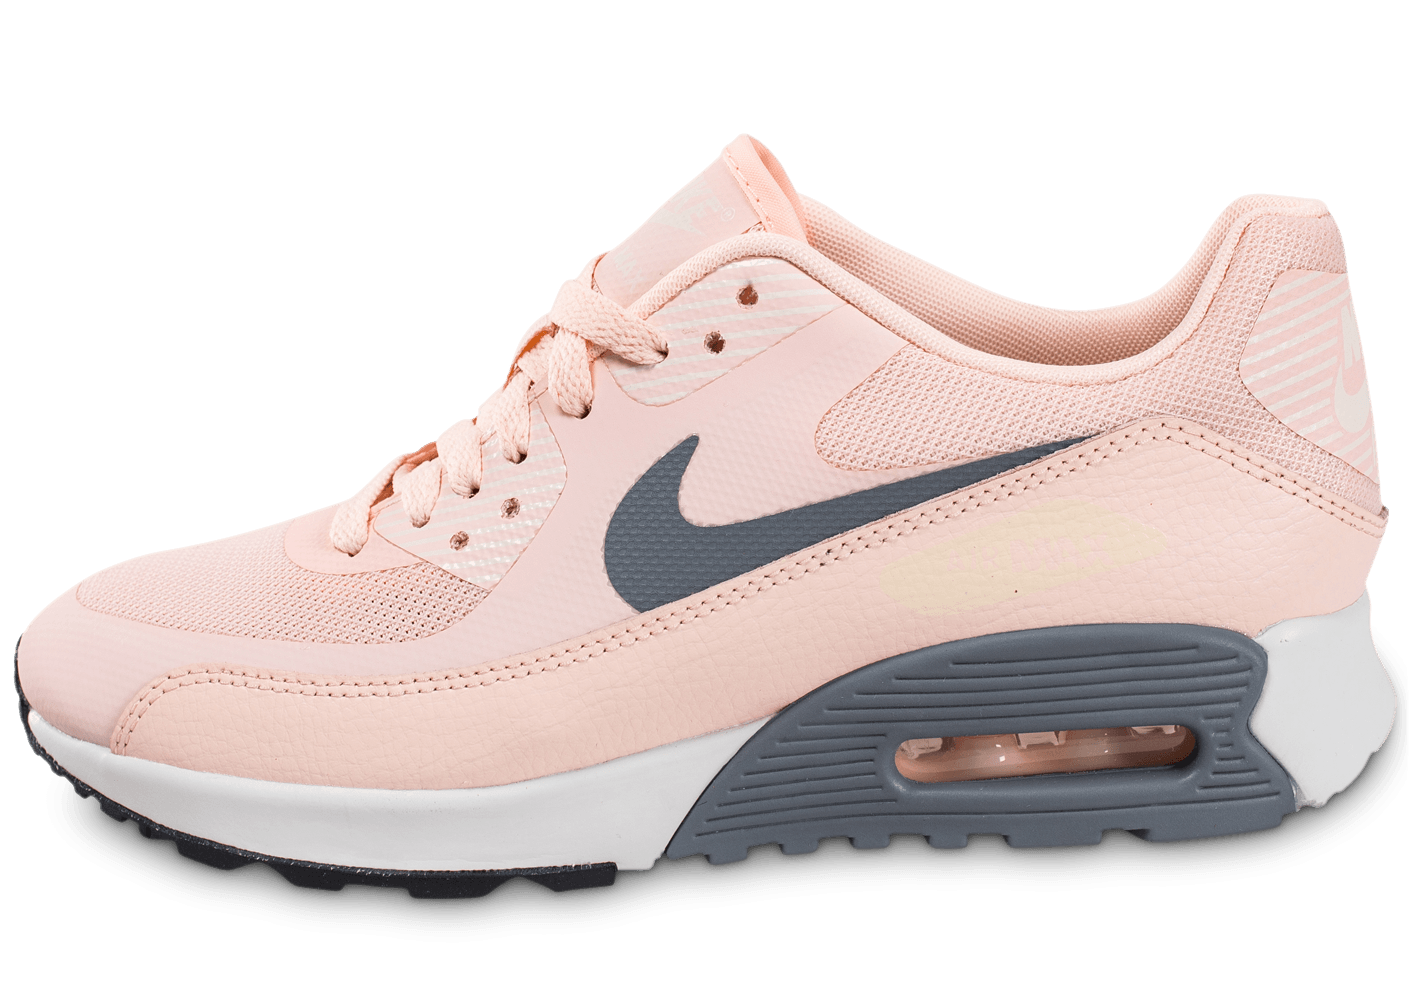 nike air max 90 ultra 2 0 rose chaussures baskets femme chausport. Black Bedroom Furniture Sets. Home Design Ideas